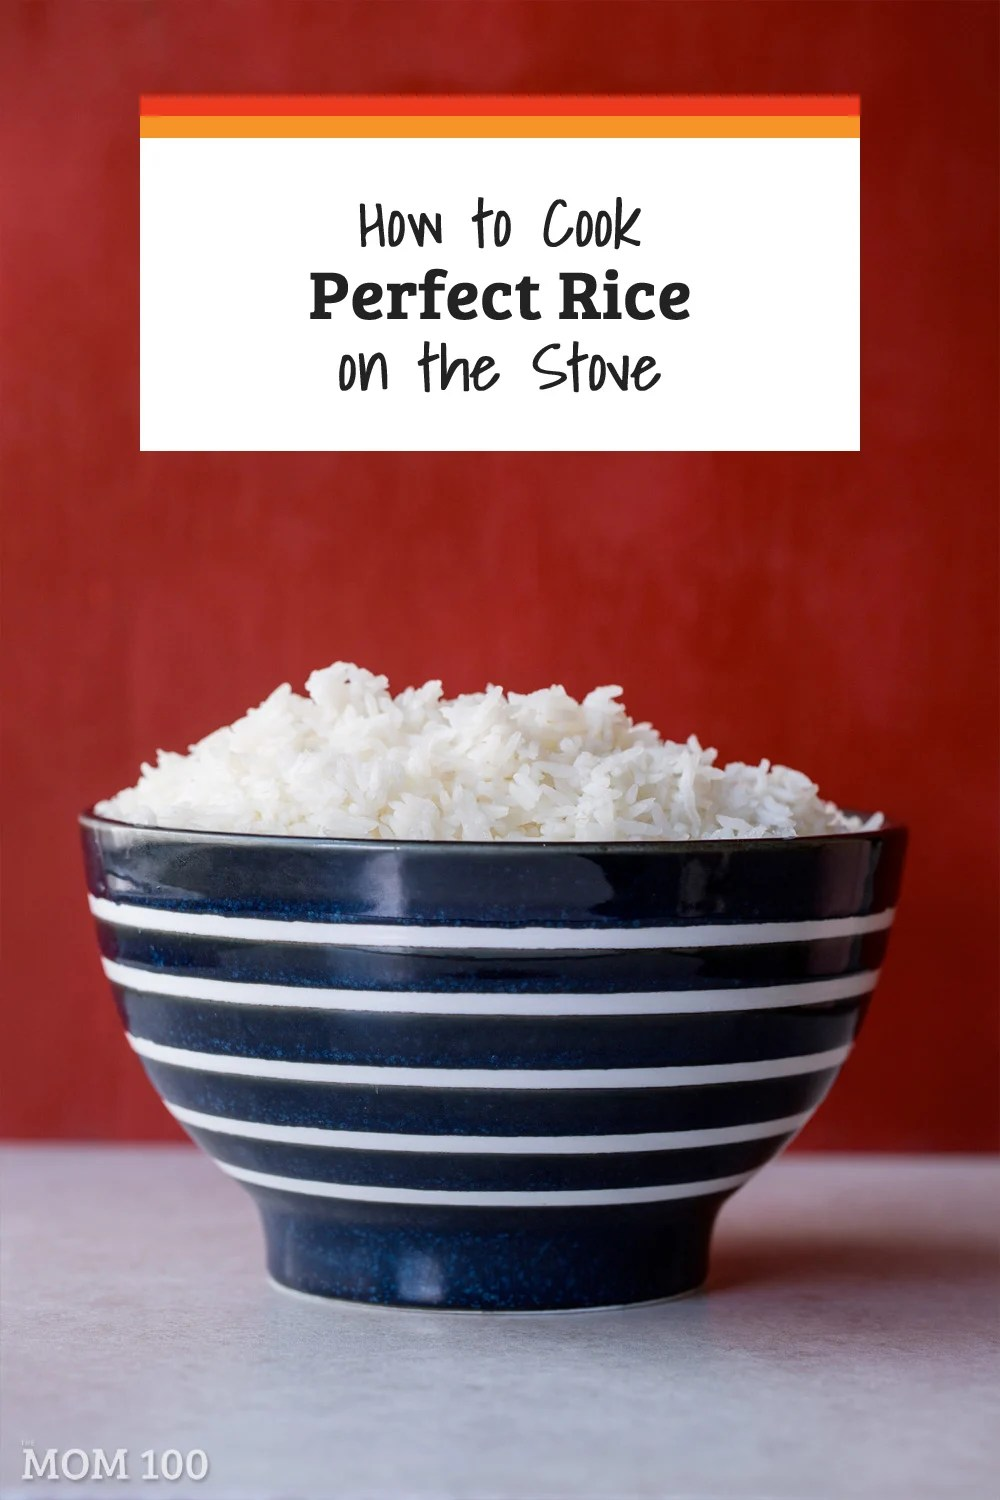 All it takes to know How to Cook Perfect Rice on the Stove - finally get over your rice fear and get fluffy, non-sticky white rice every time.